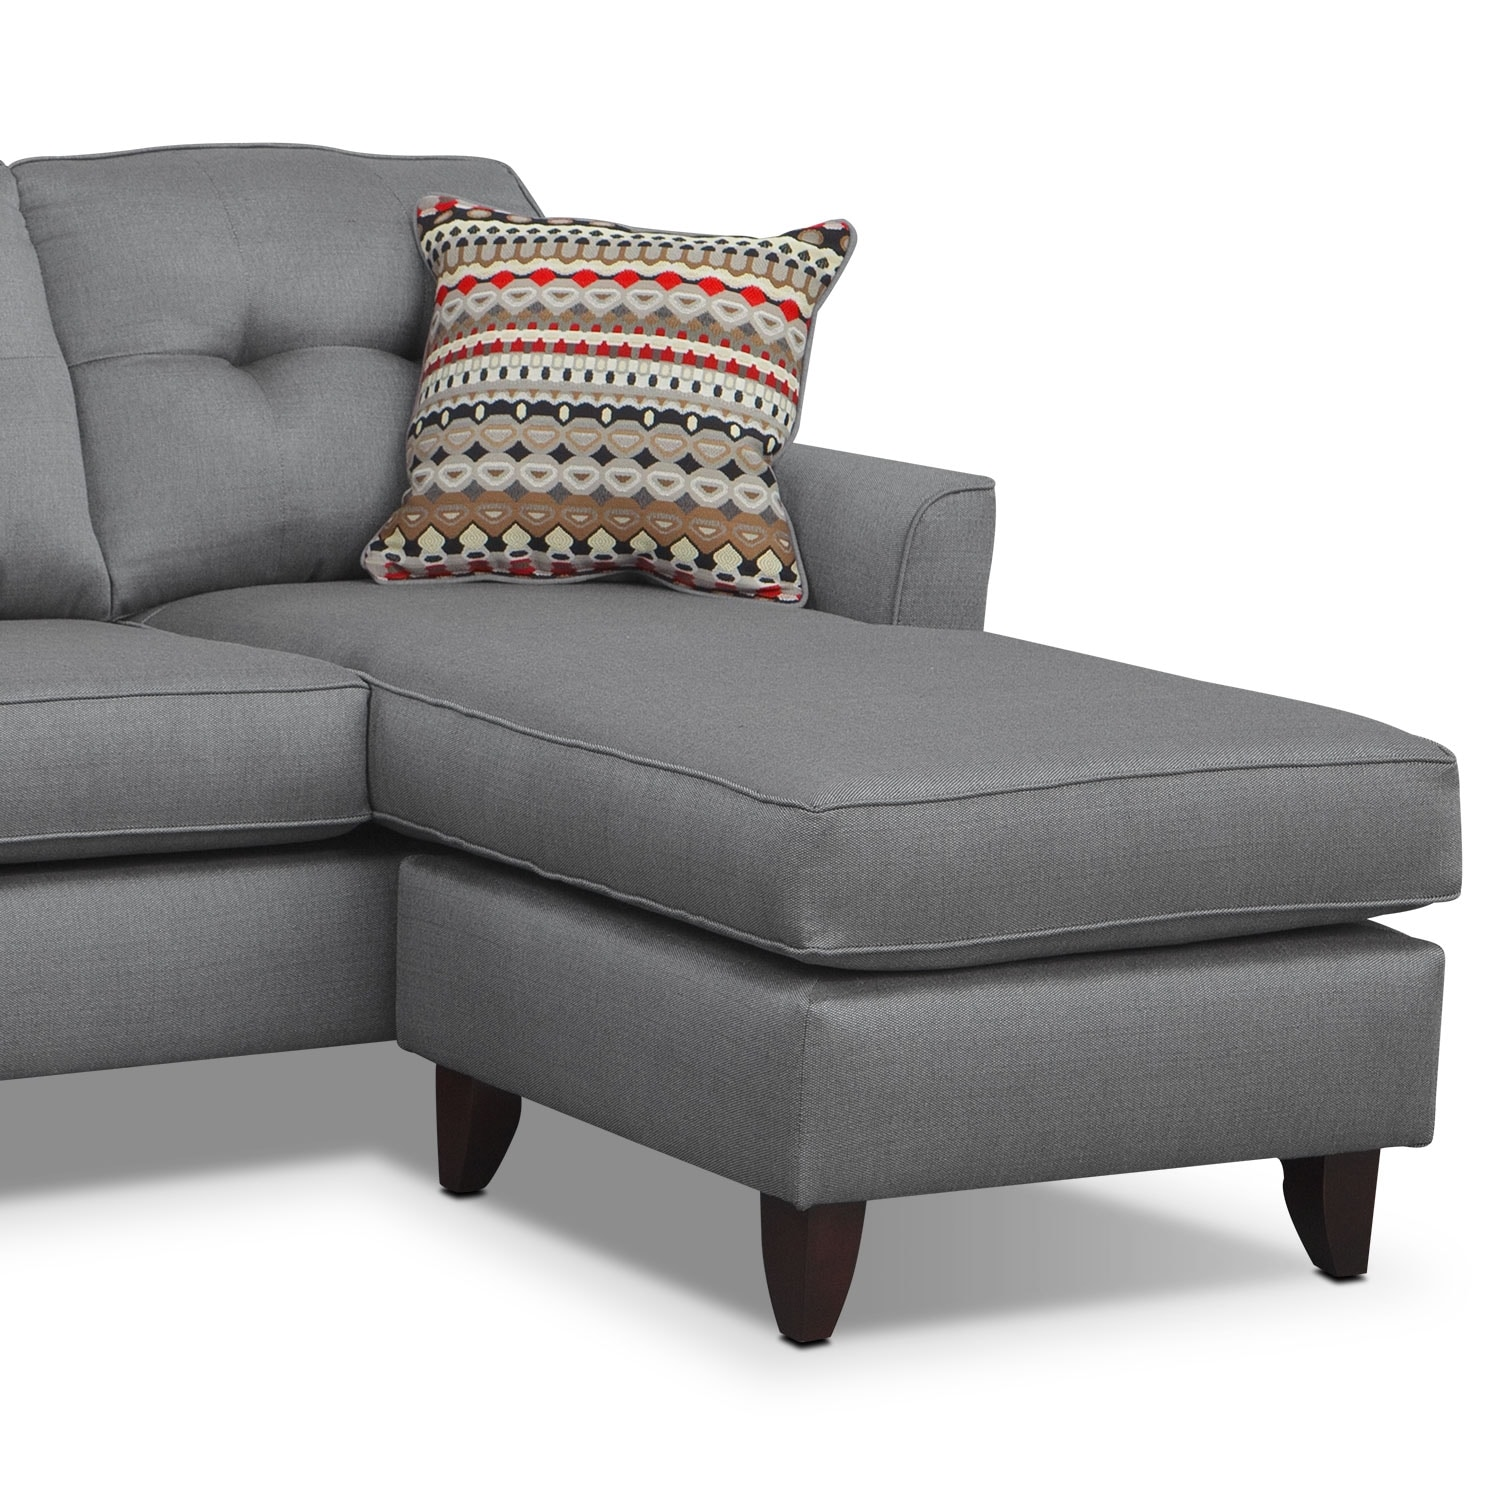 sofa with ottoman chaise. Black Bedroom Furniture Sets. Home Design Ideas